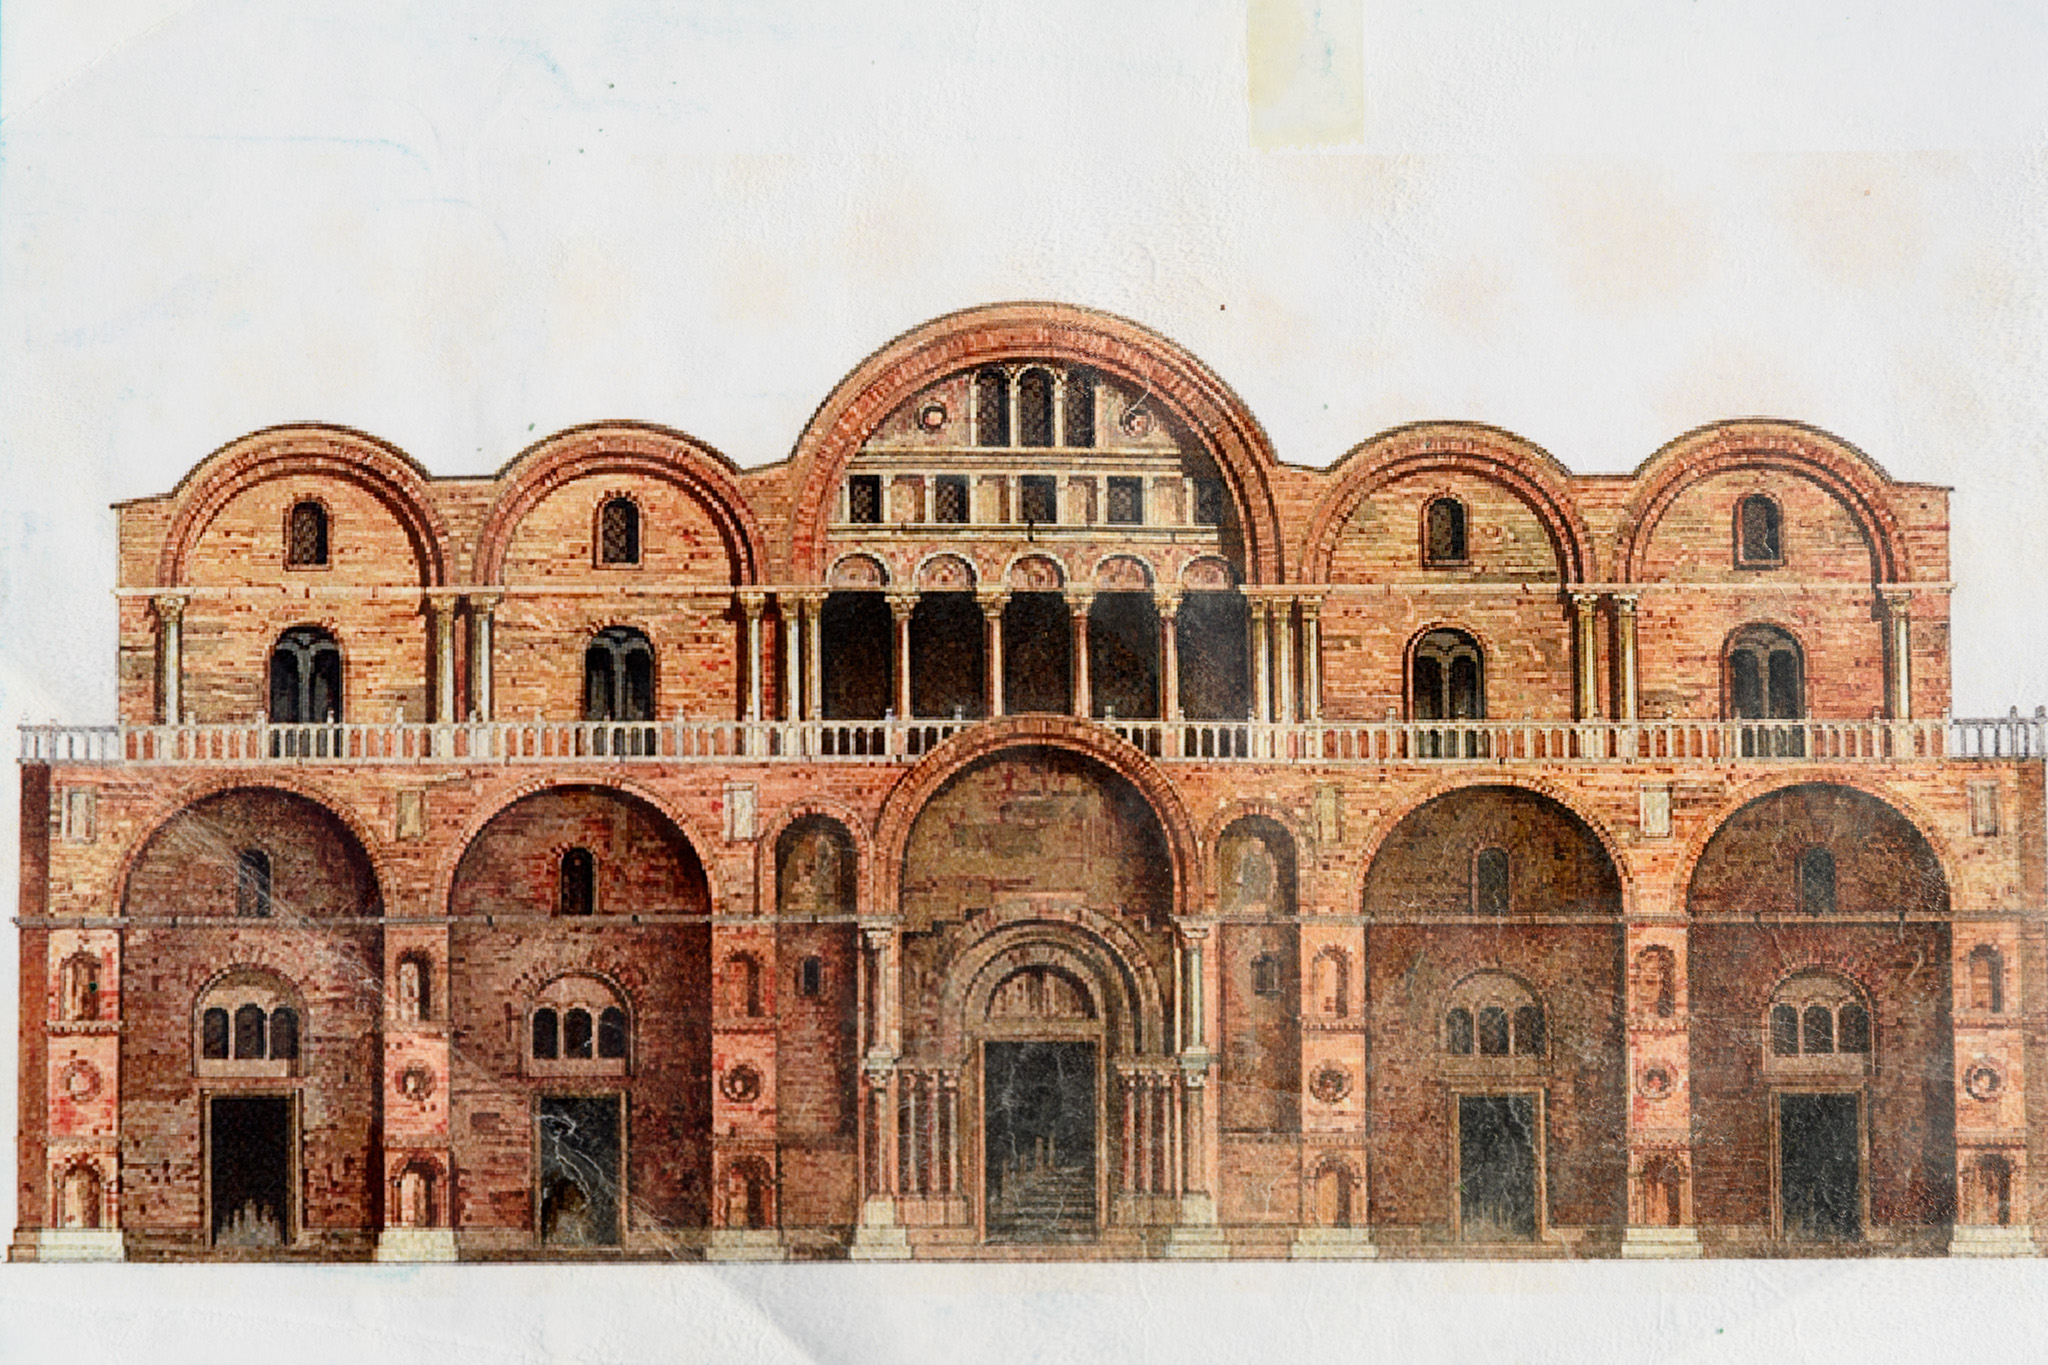 Photo of uncredited illustration of Saint Mark's Bascillica